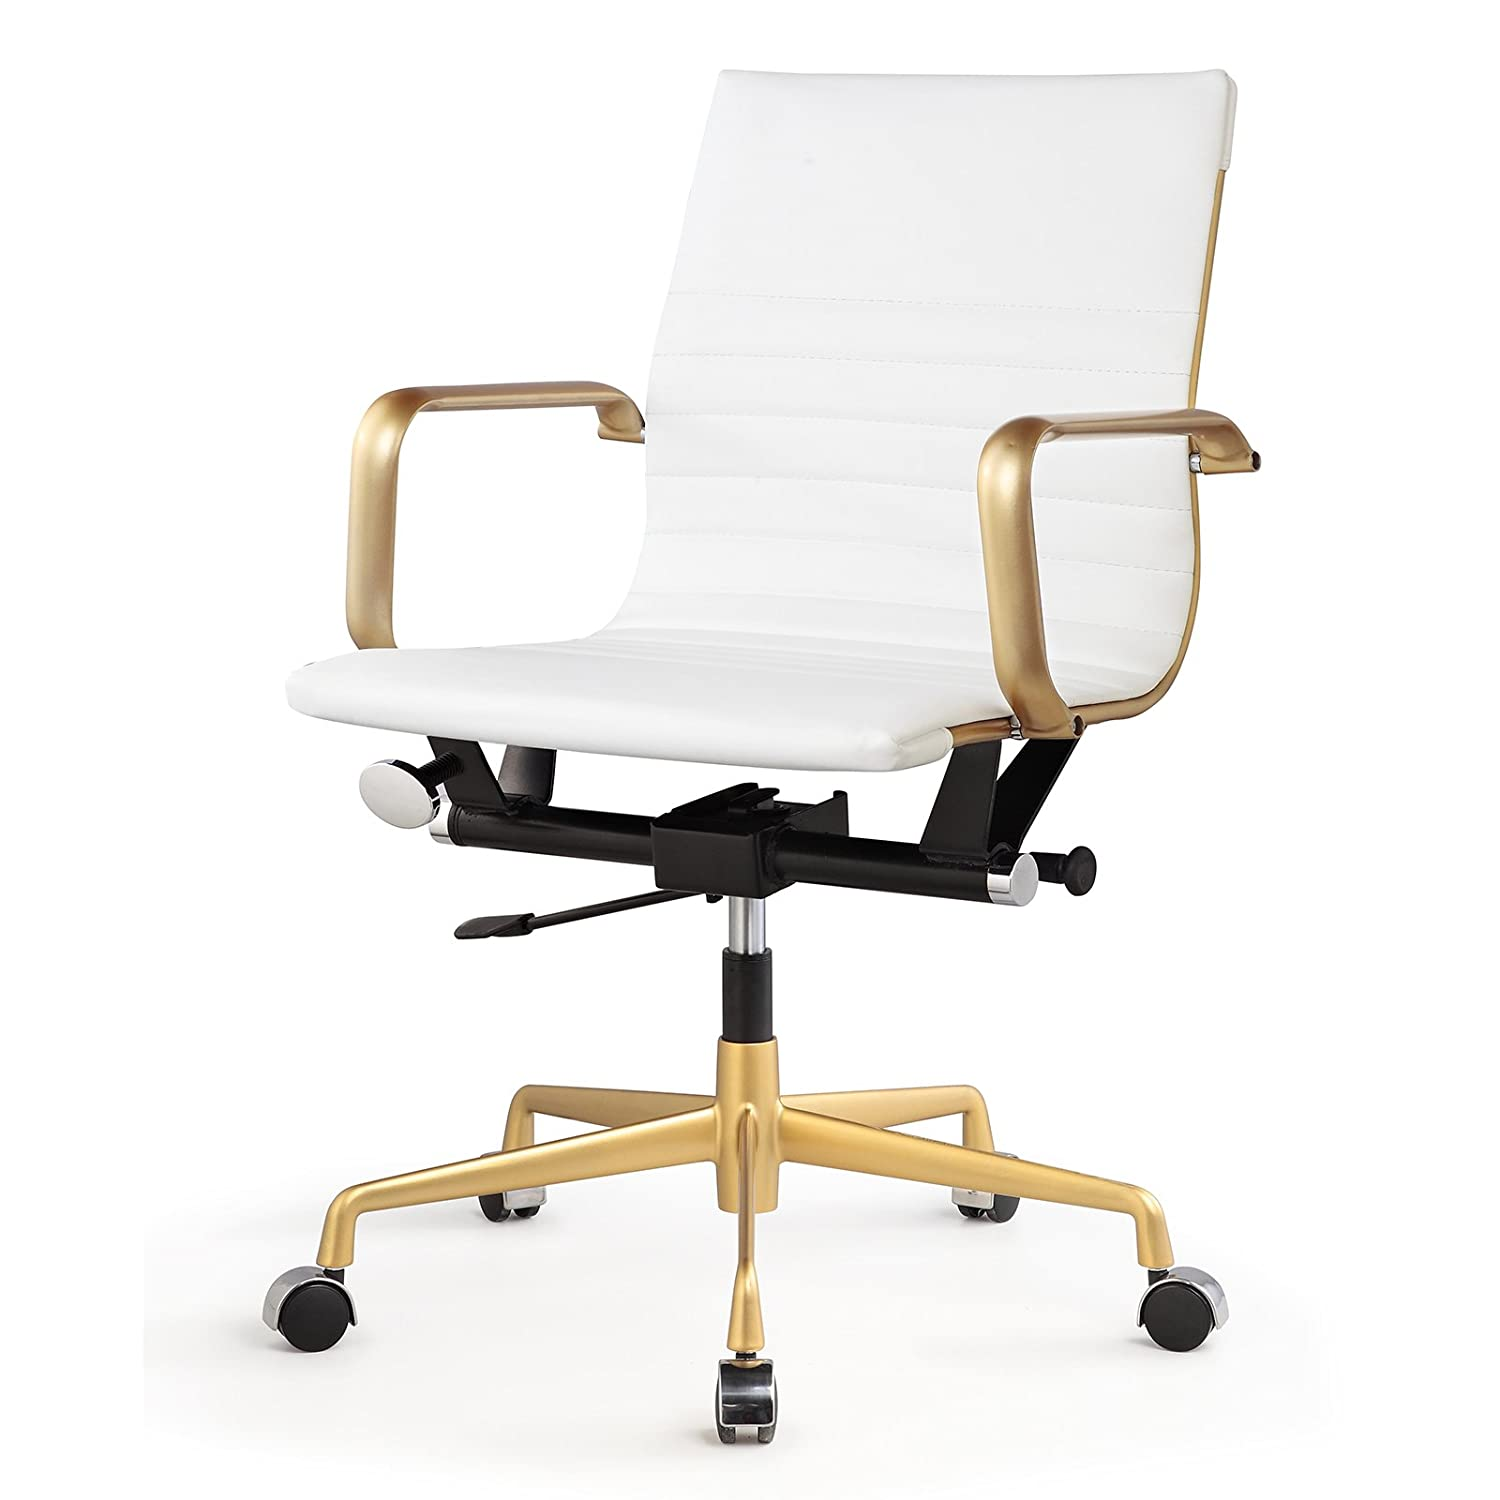 office chair white leather. Amazon.com: Meelano 348-GD-WHI Office Chair In Vegan Leather, Gold/White: Kitchen \u0026 Dining White Leather